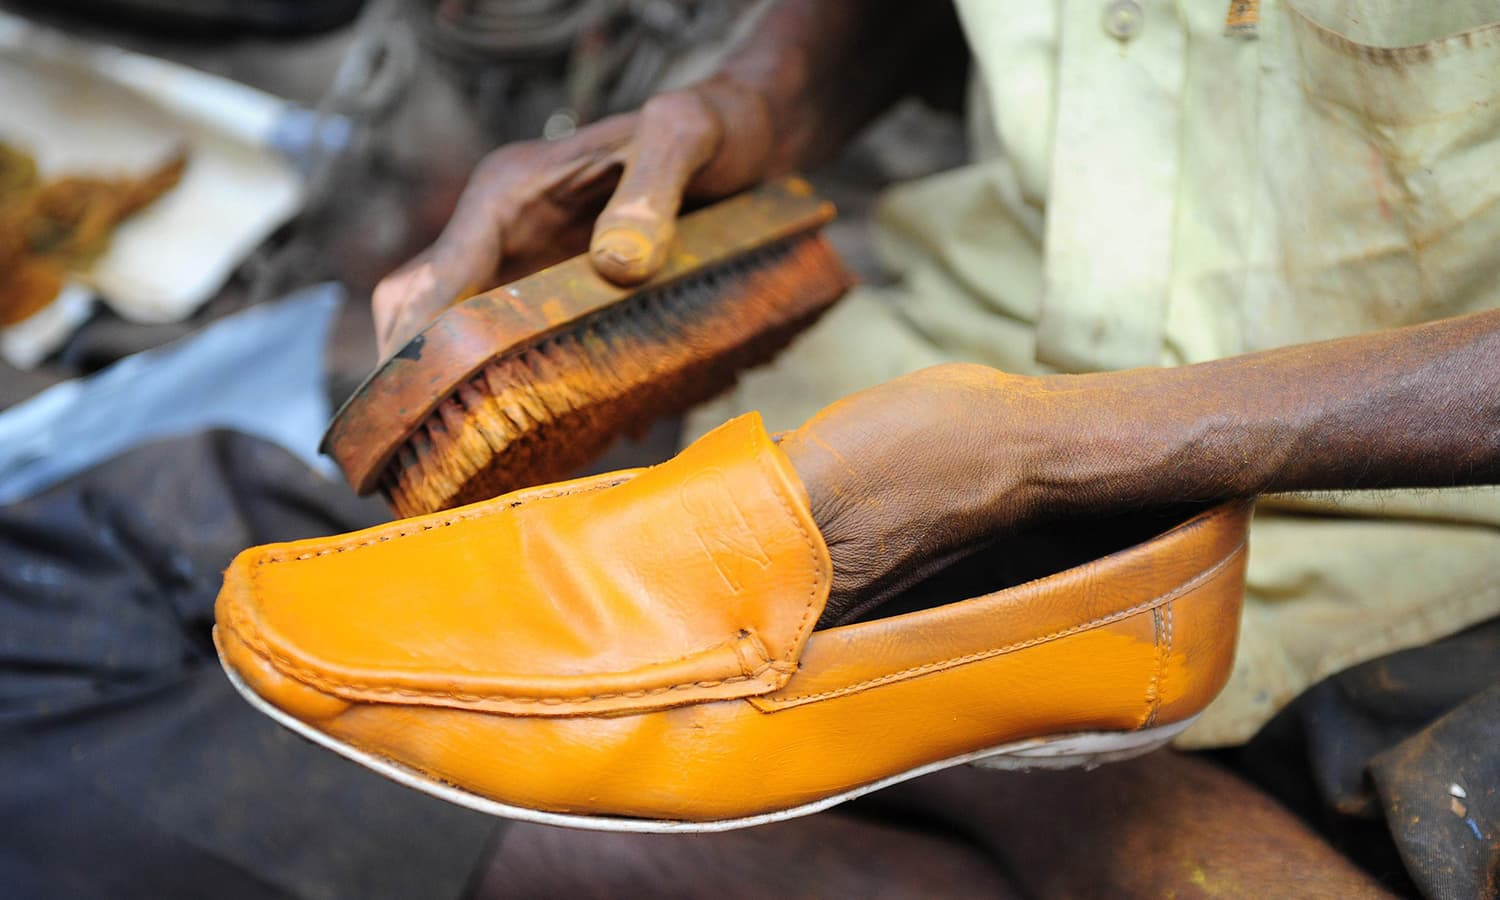 Polishing a shoe at the road-side. -AFP